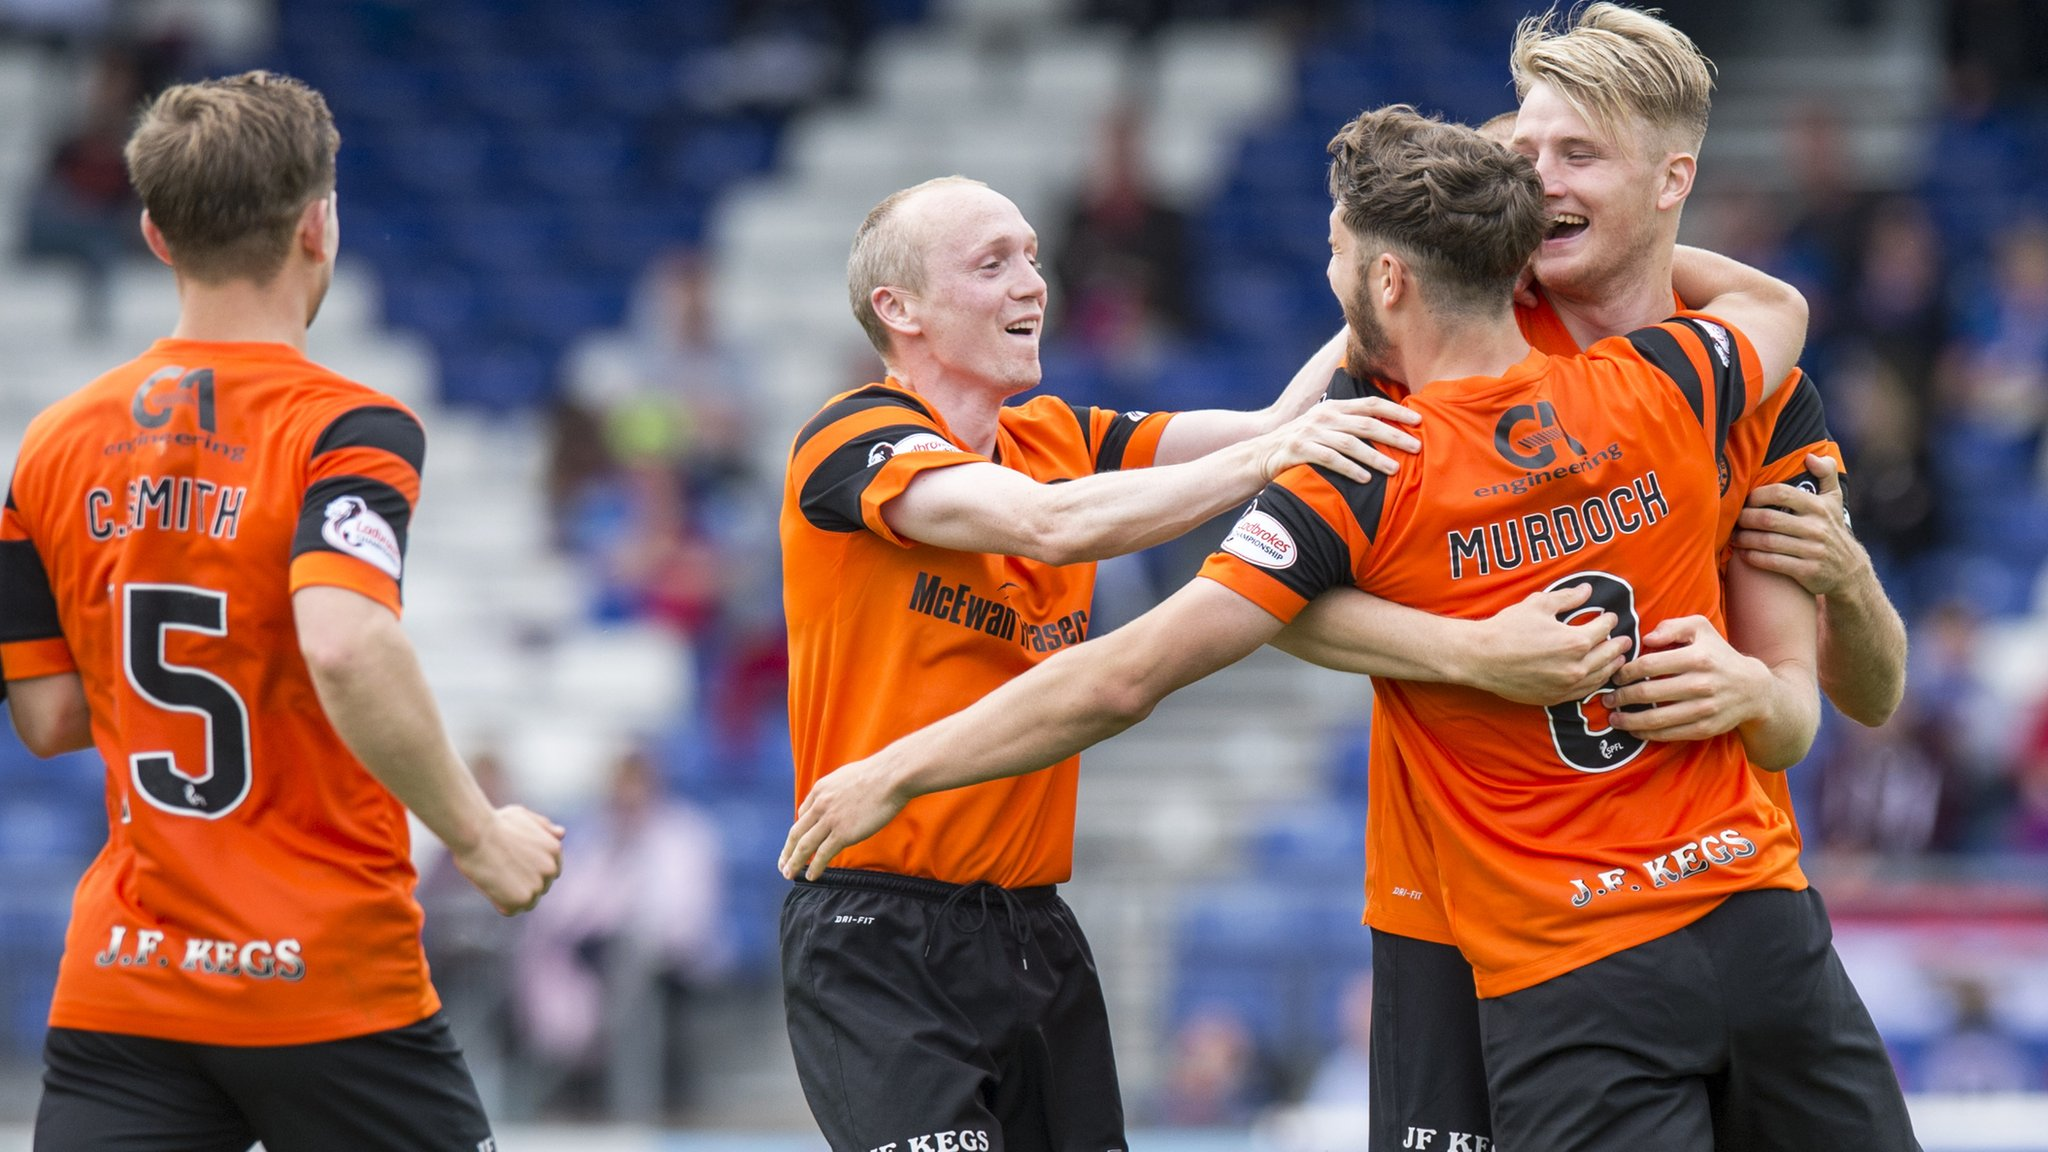 Inverness CT 1-1 Dundee United (1-4 pens)